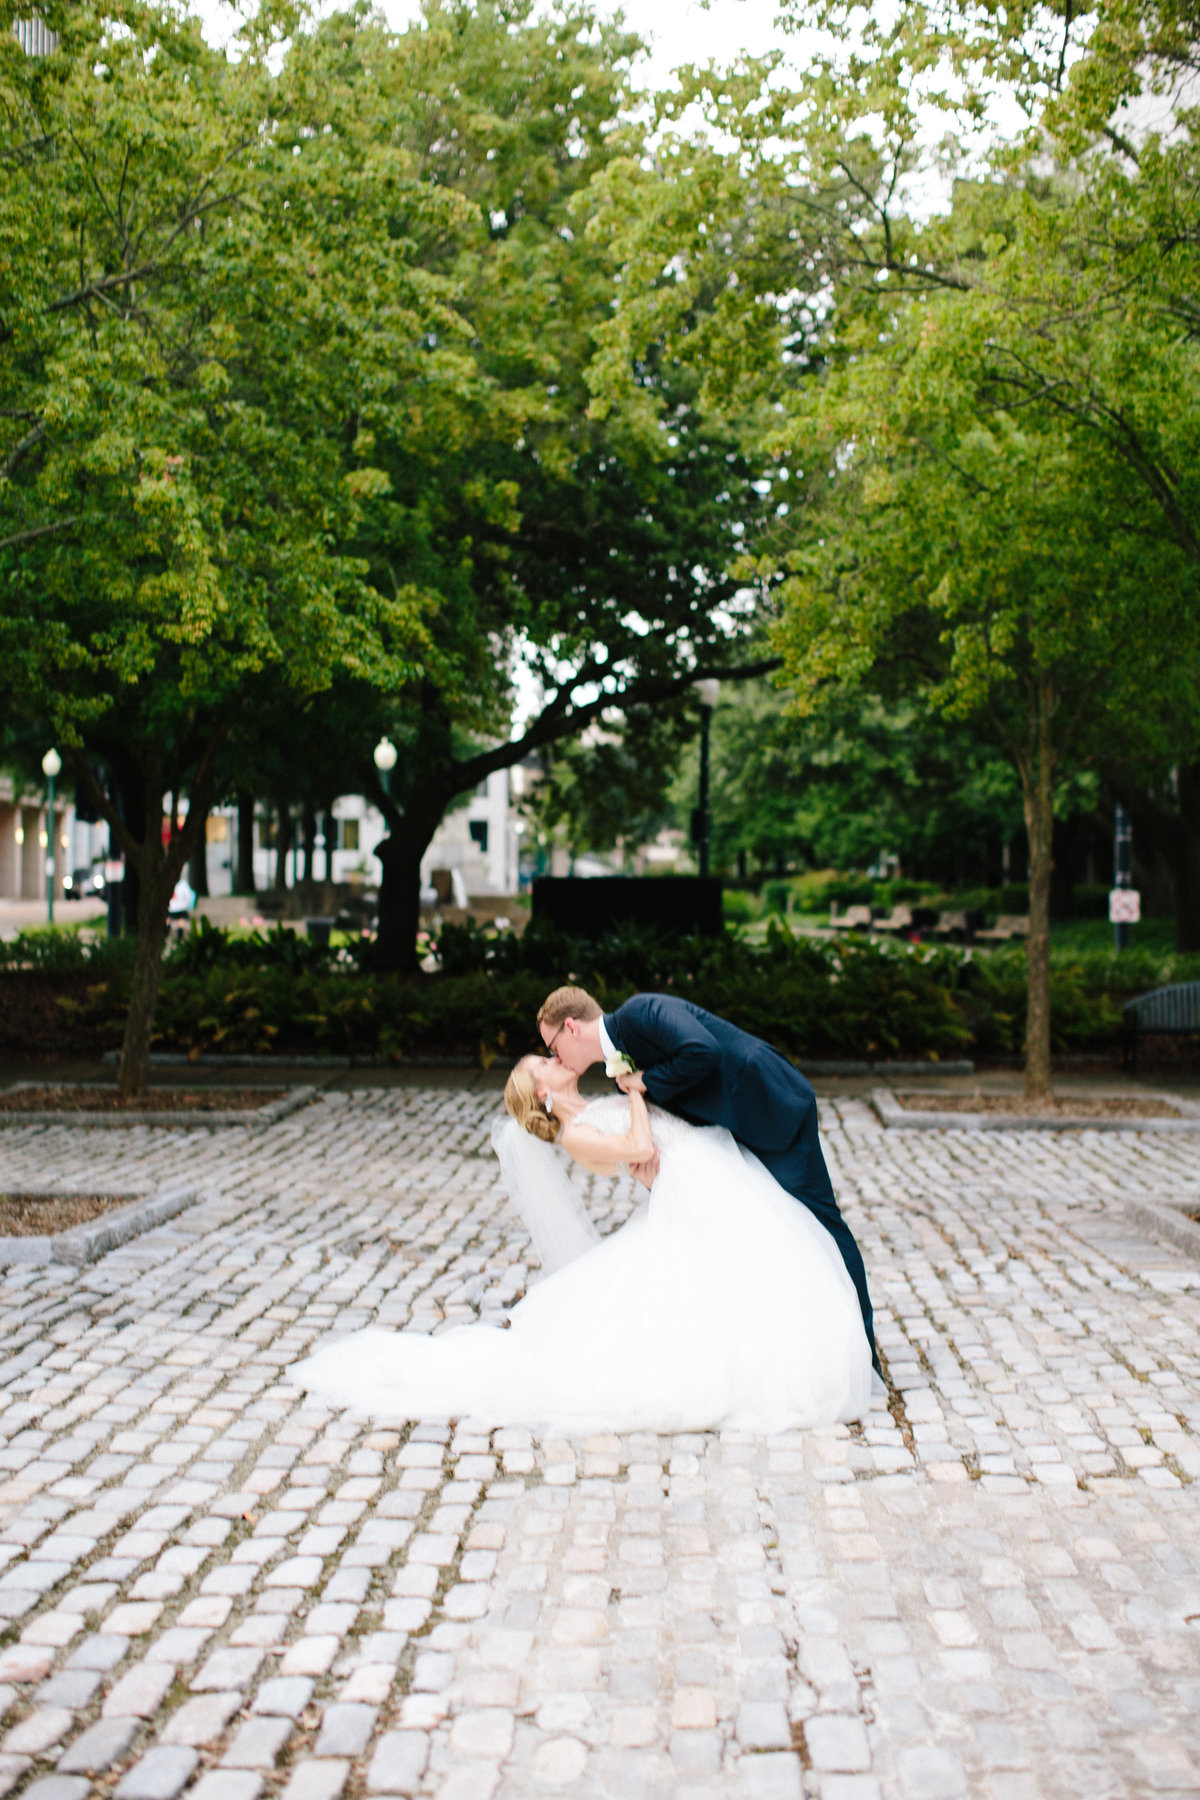 Heart's Content Events - Virginia Maryland DC Wedding and Event Planner - Marriage Coach - Adrienne Rolon - Photo13